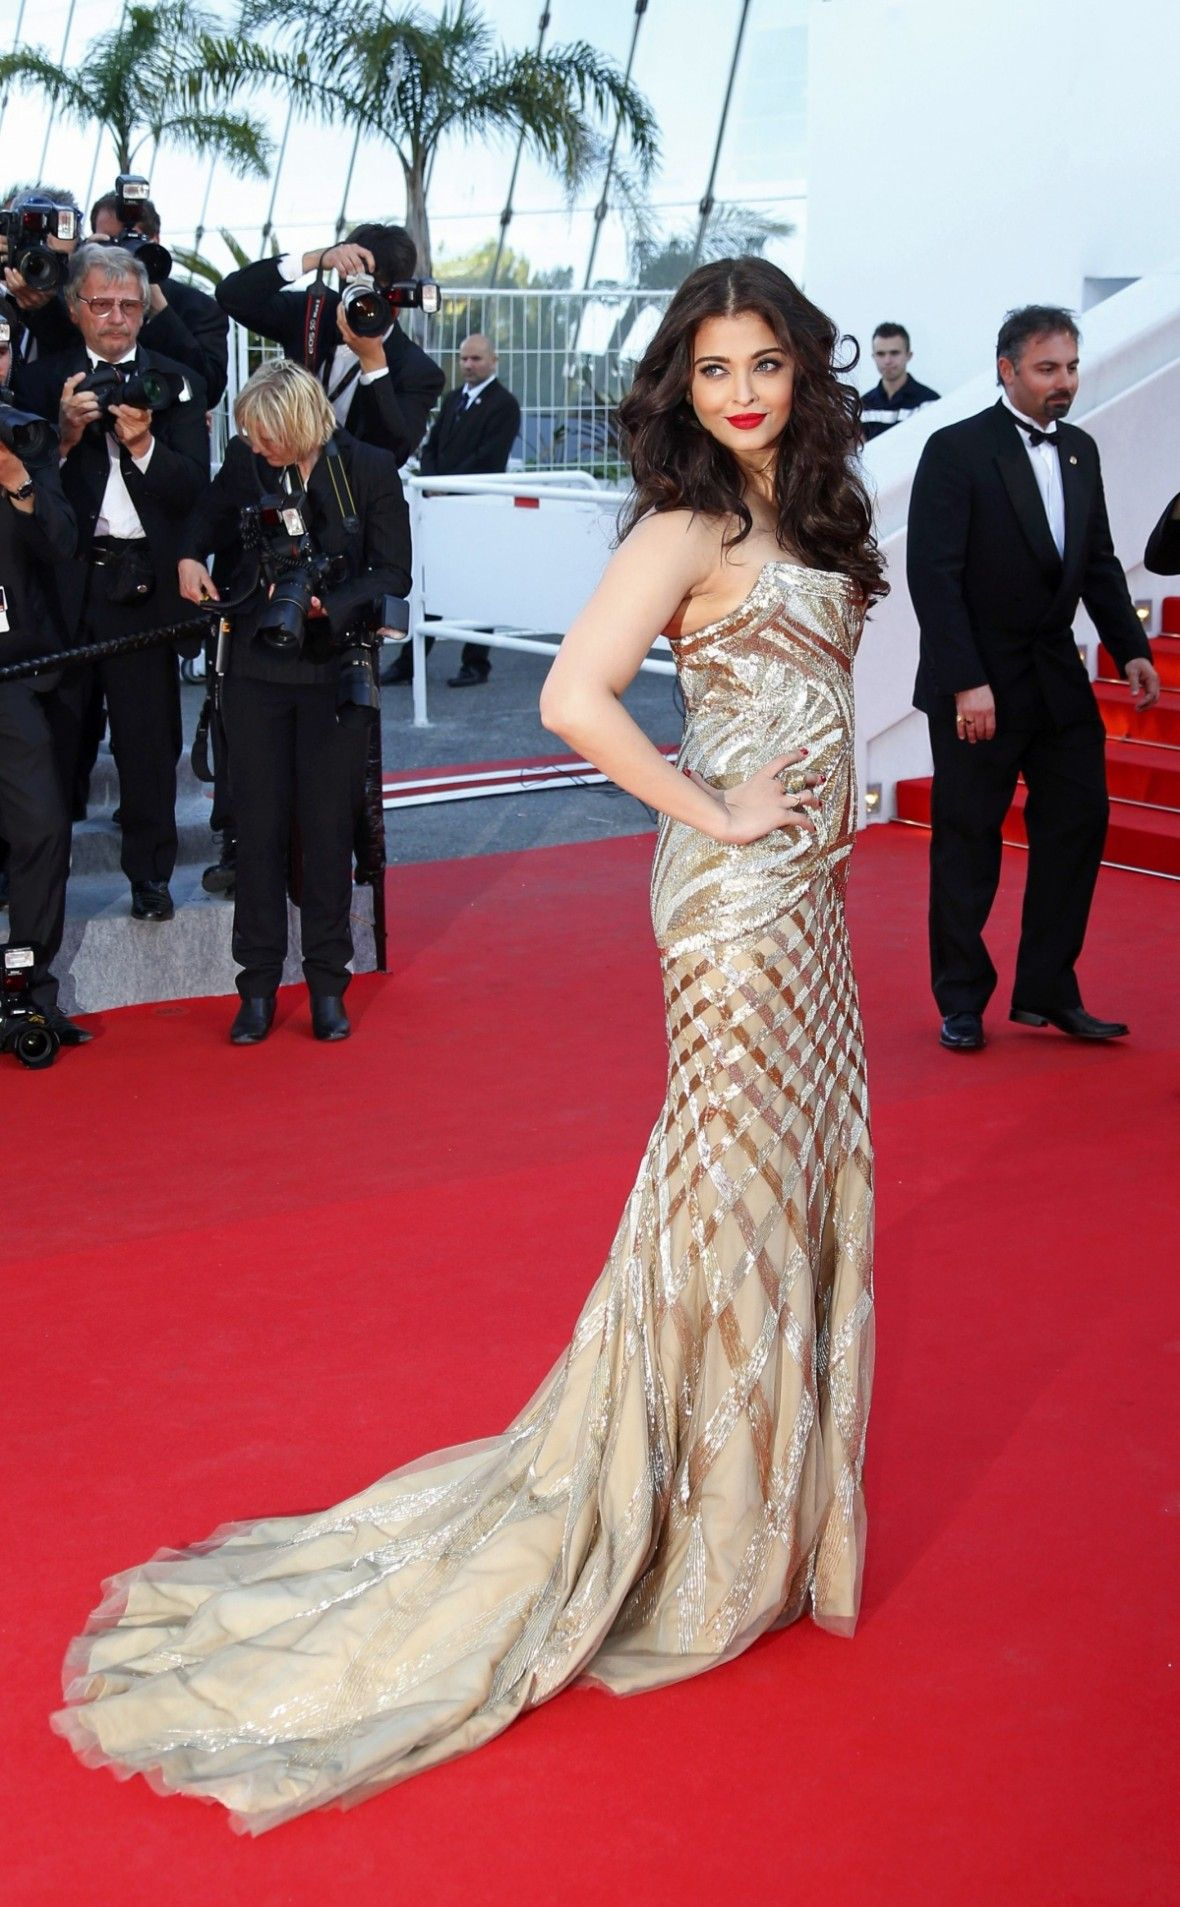 Bollywood Actress Aishwarya Rai Poses On The Red Carpet As She Arrives For The Screening Of Th Cannes Film Festival 2014 Cannes Film Festival Bollywood Actress